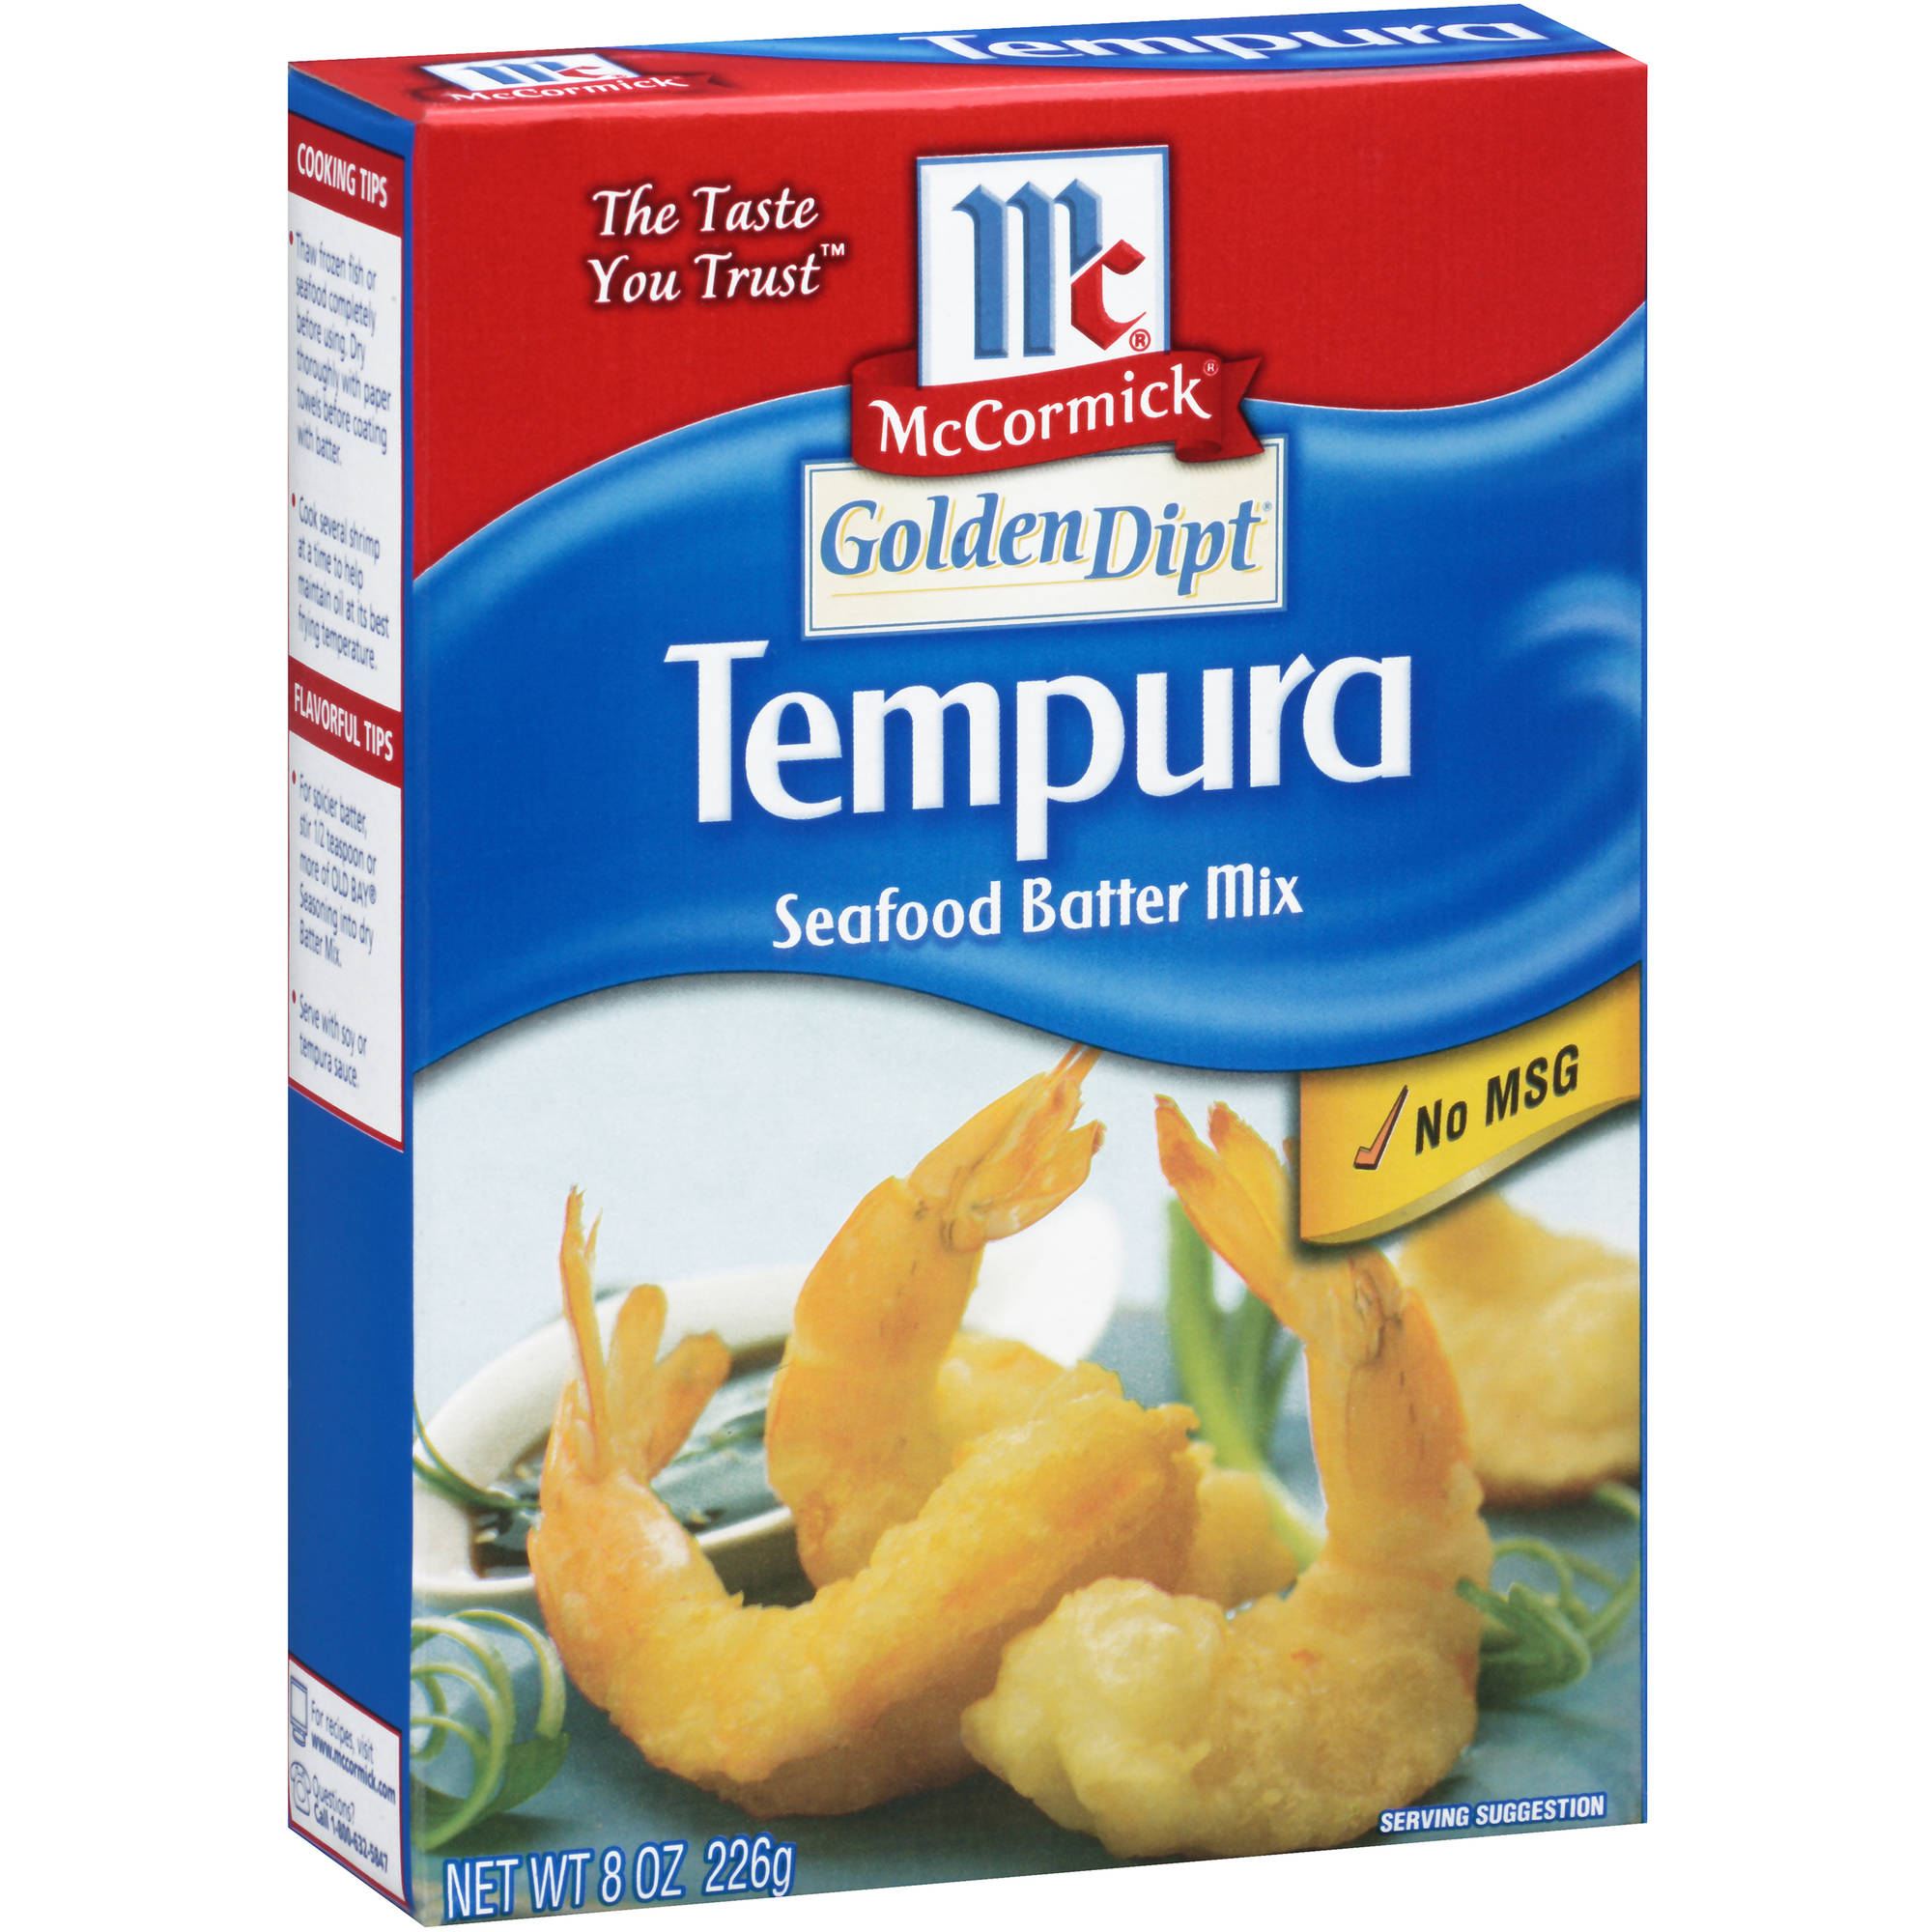 McCormick Golden Dipt Tempura Seafood Batter Mix, 8 oz